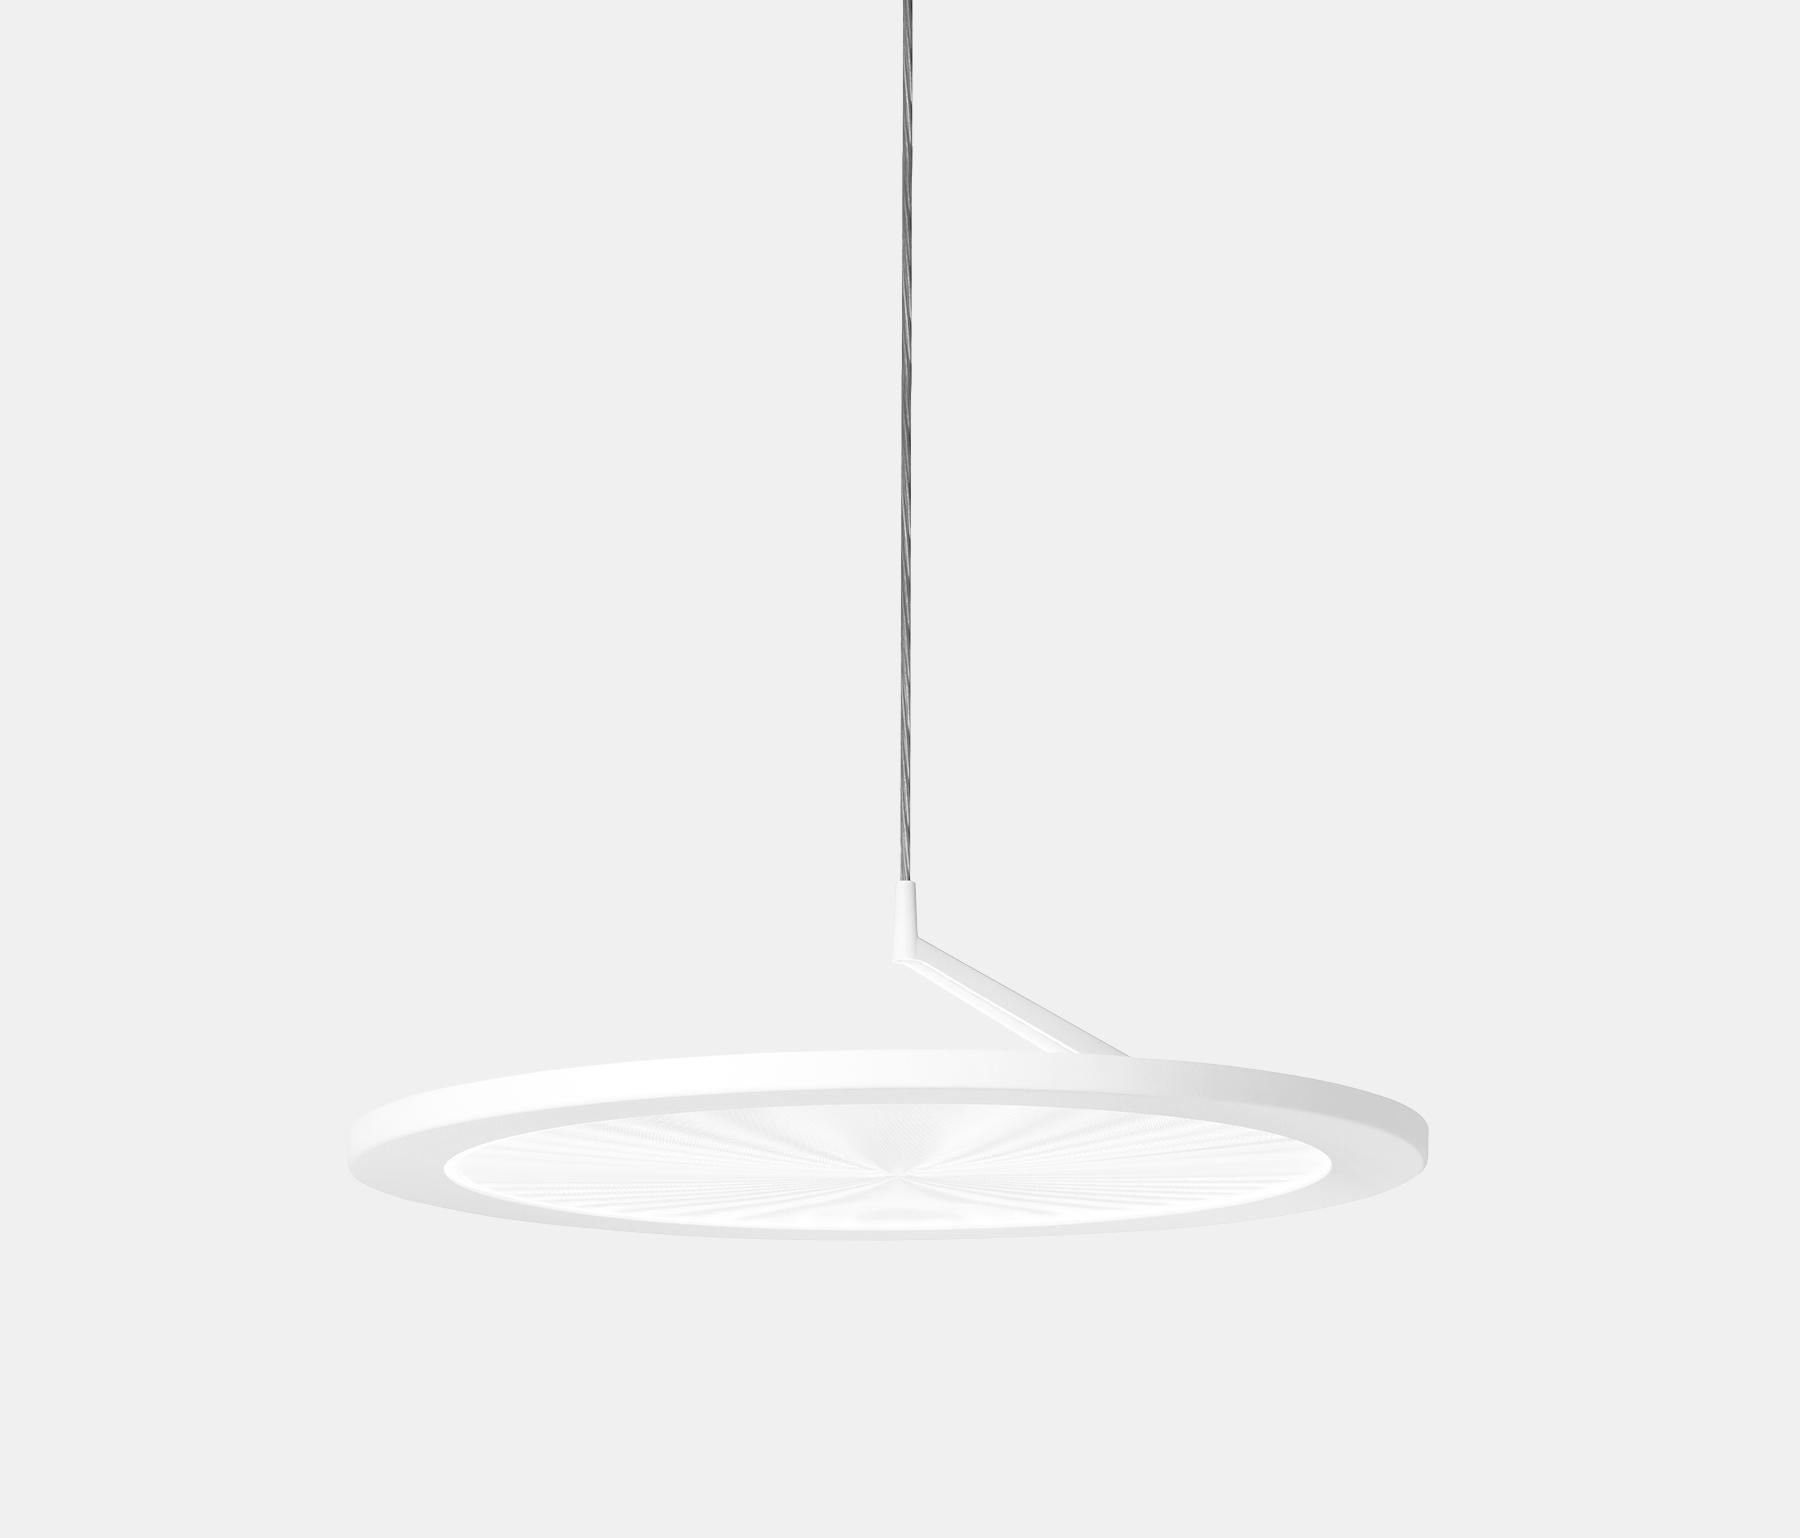 HELIOS suspended by XAL | Suspended lights  sc 1 st  Architonic & HELIOS SUSPENDED - Suspended lights from XAL | Architonic